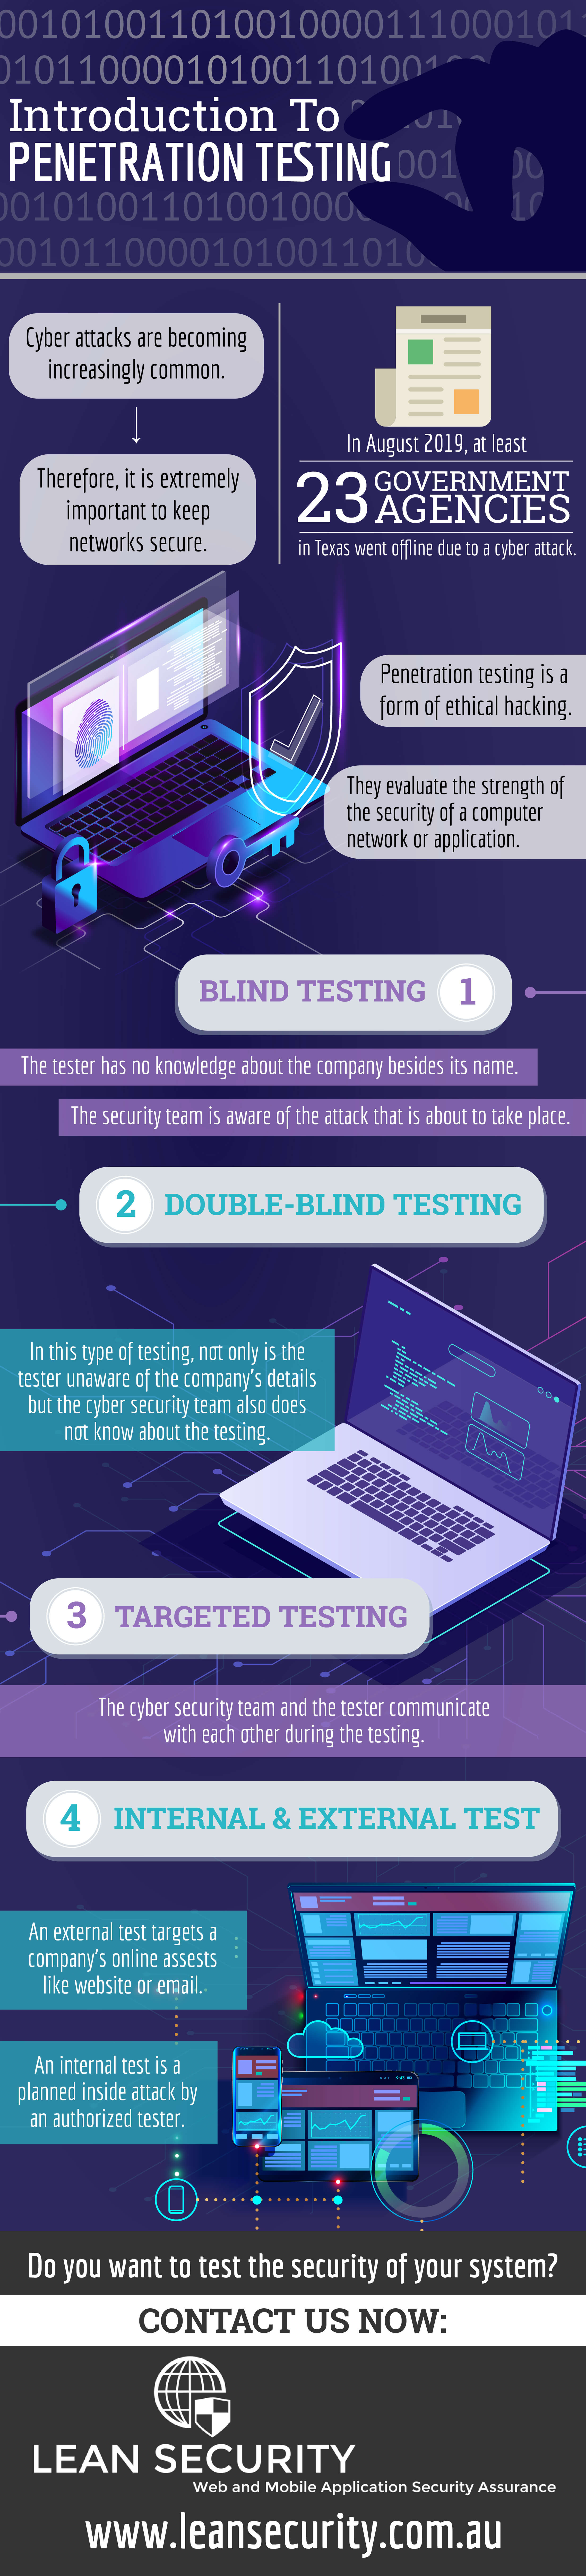 Introduction to Penetration Testing.jpg